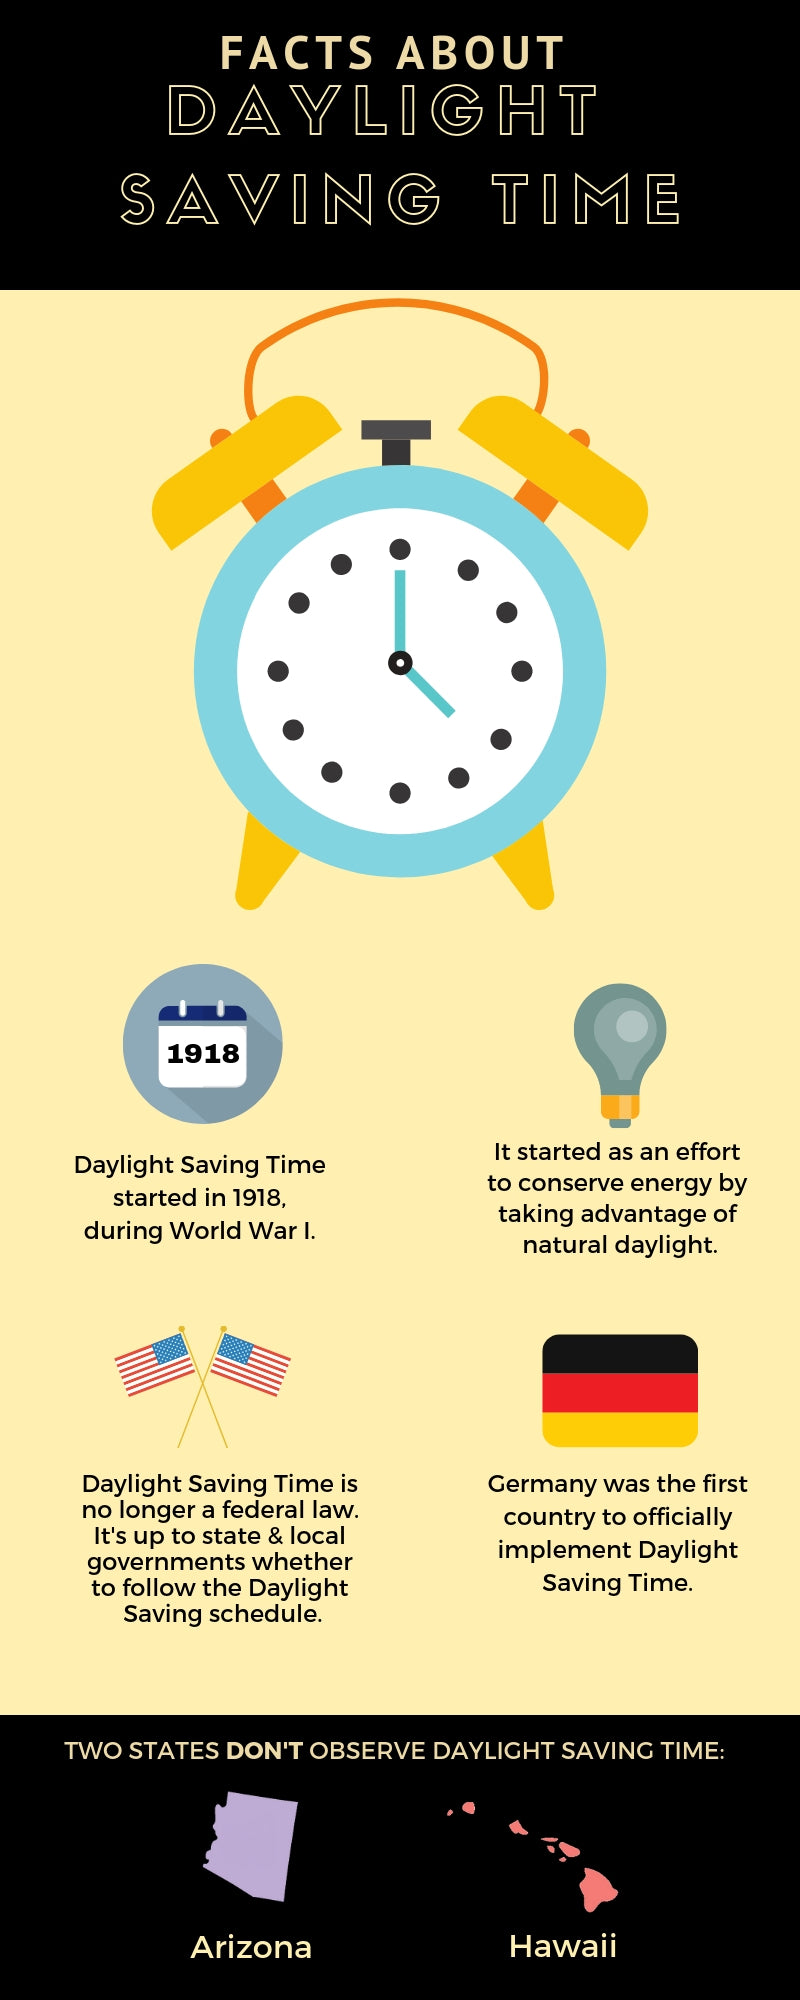 What Is Daylight Savings Time & Where Did It Come From? | Daylight Saving Time Infographic | Bulbhead